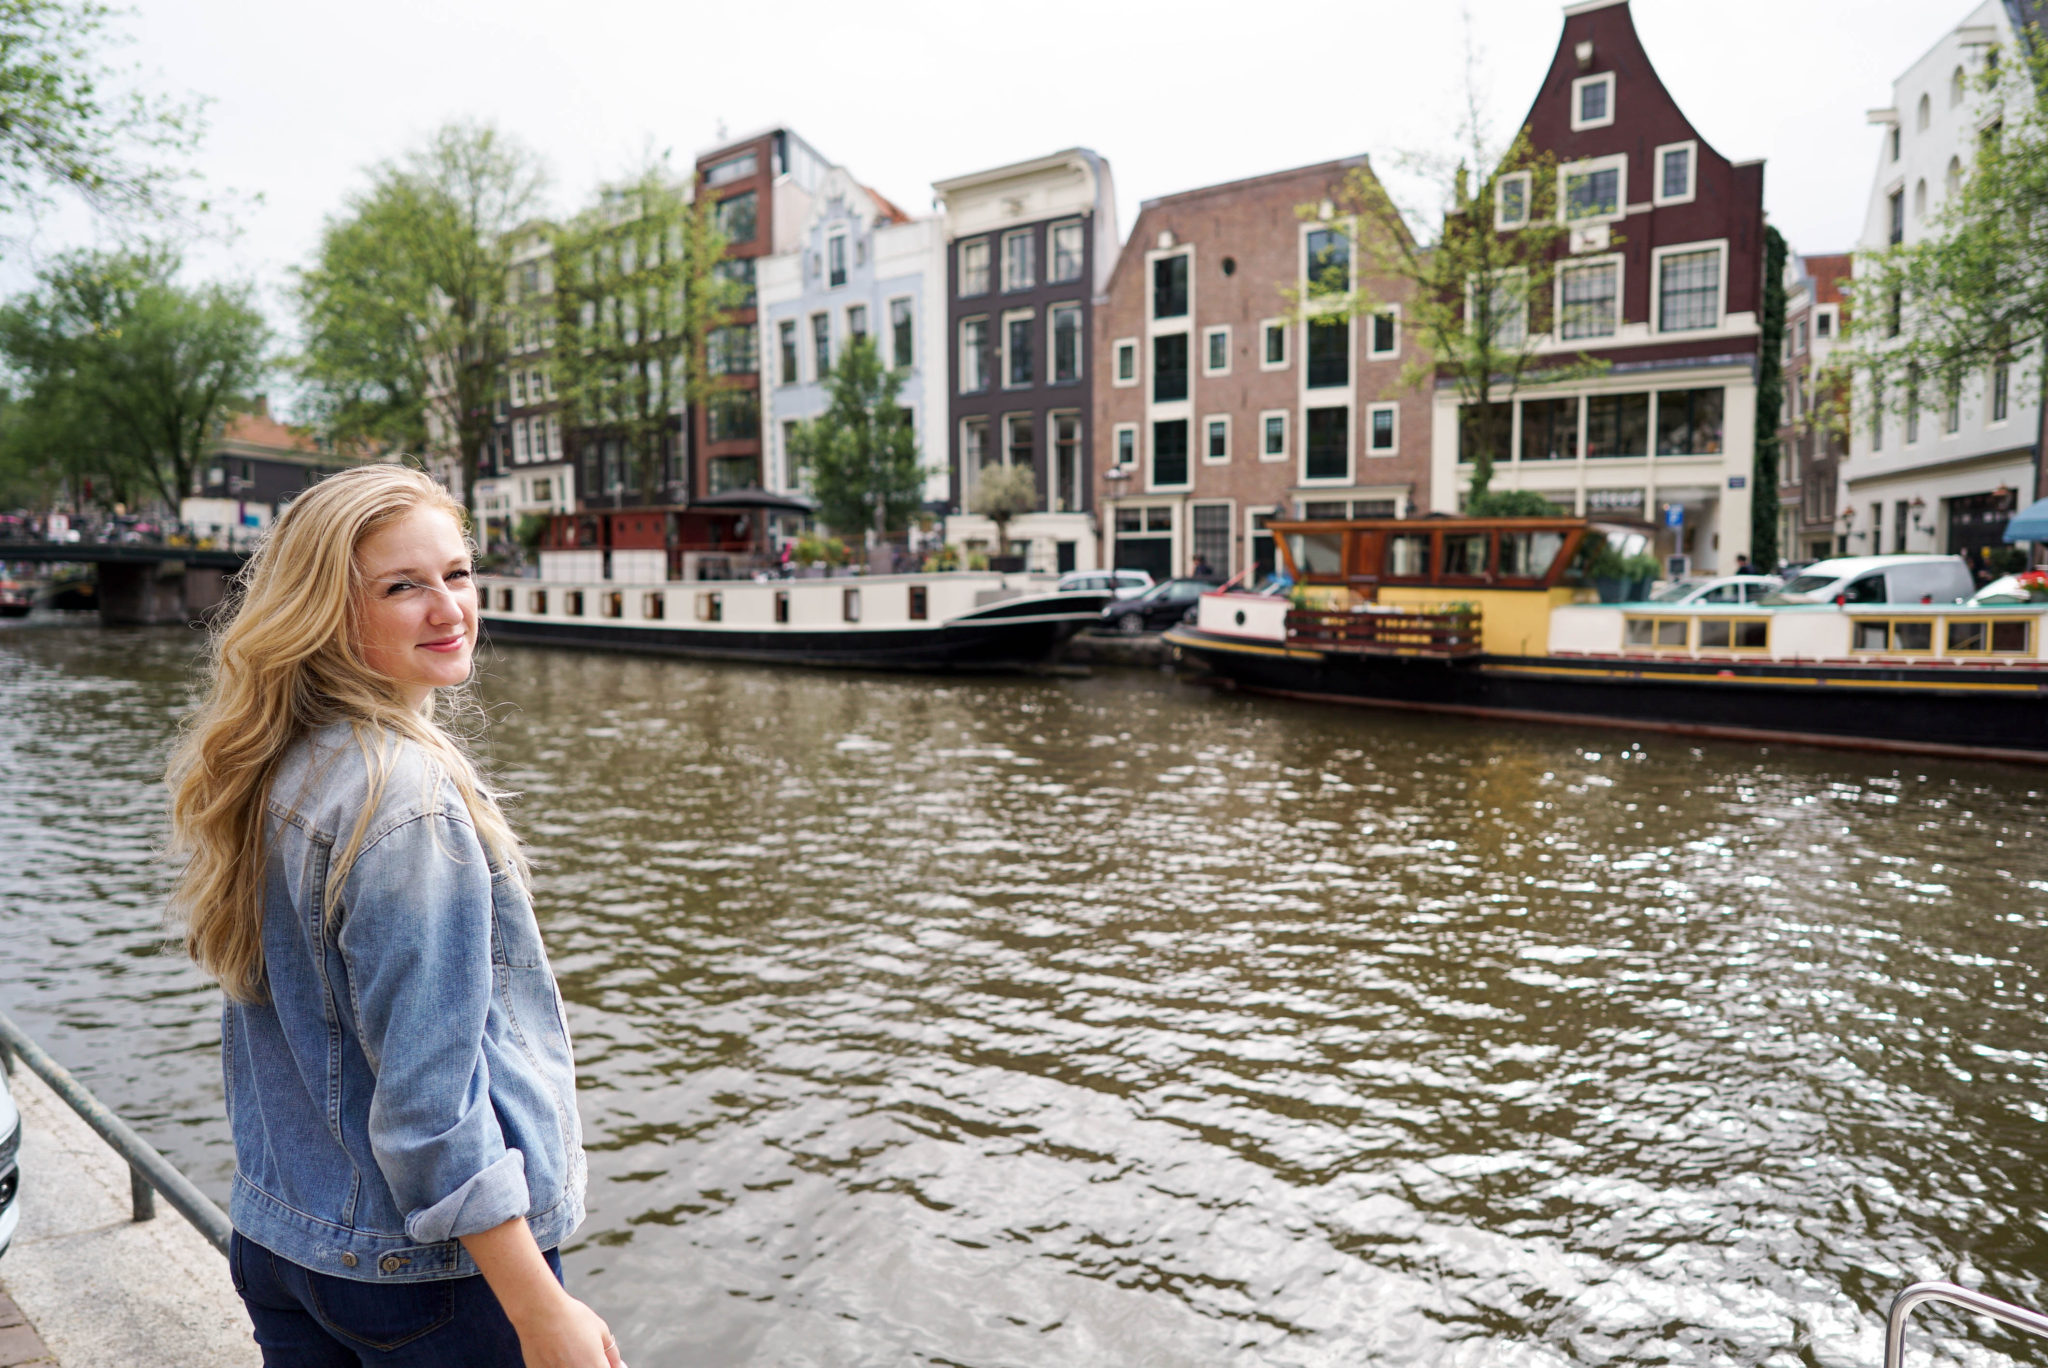 The Perfect 2 Day Amsterdam Itinerary